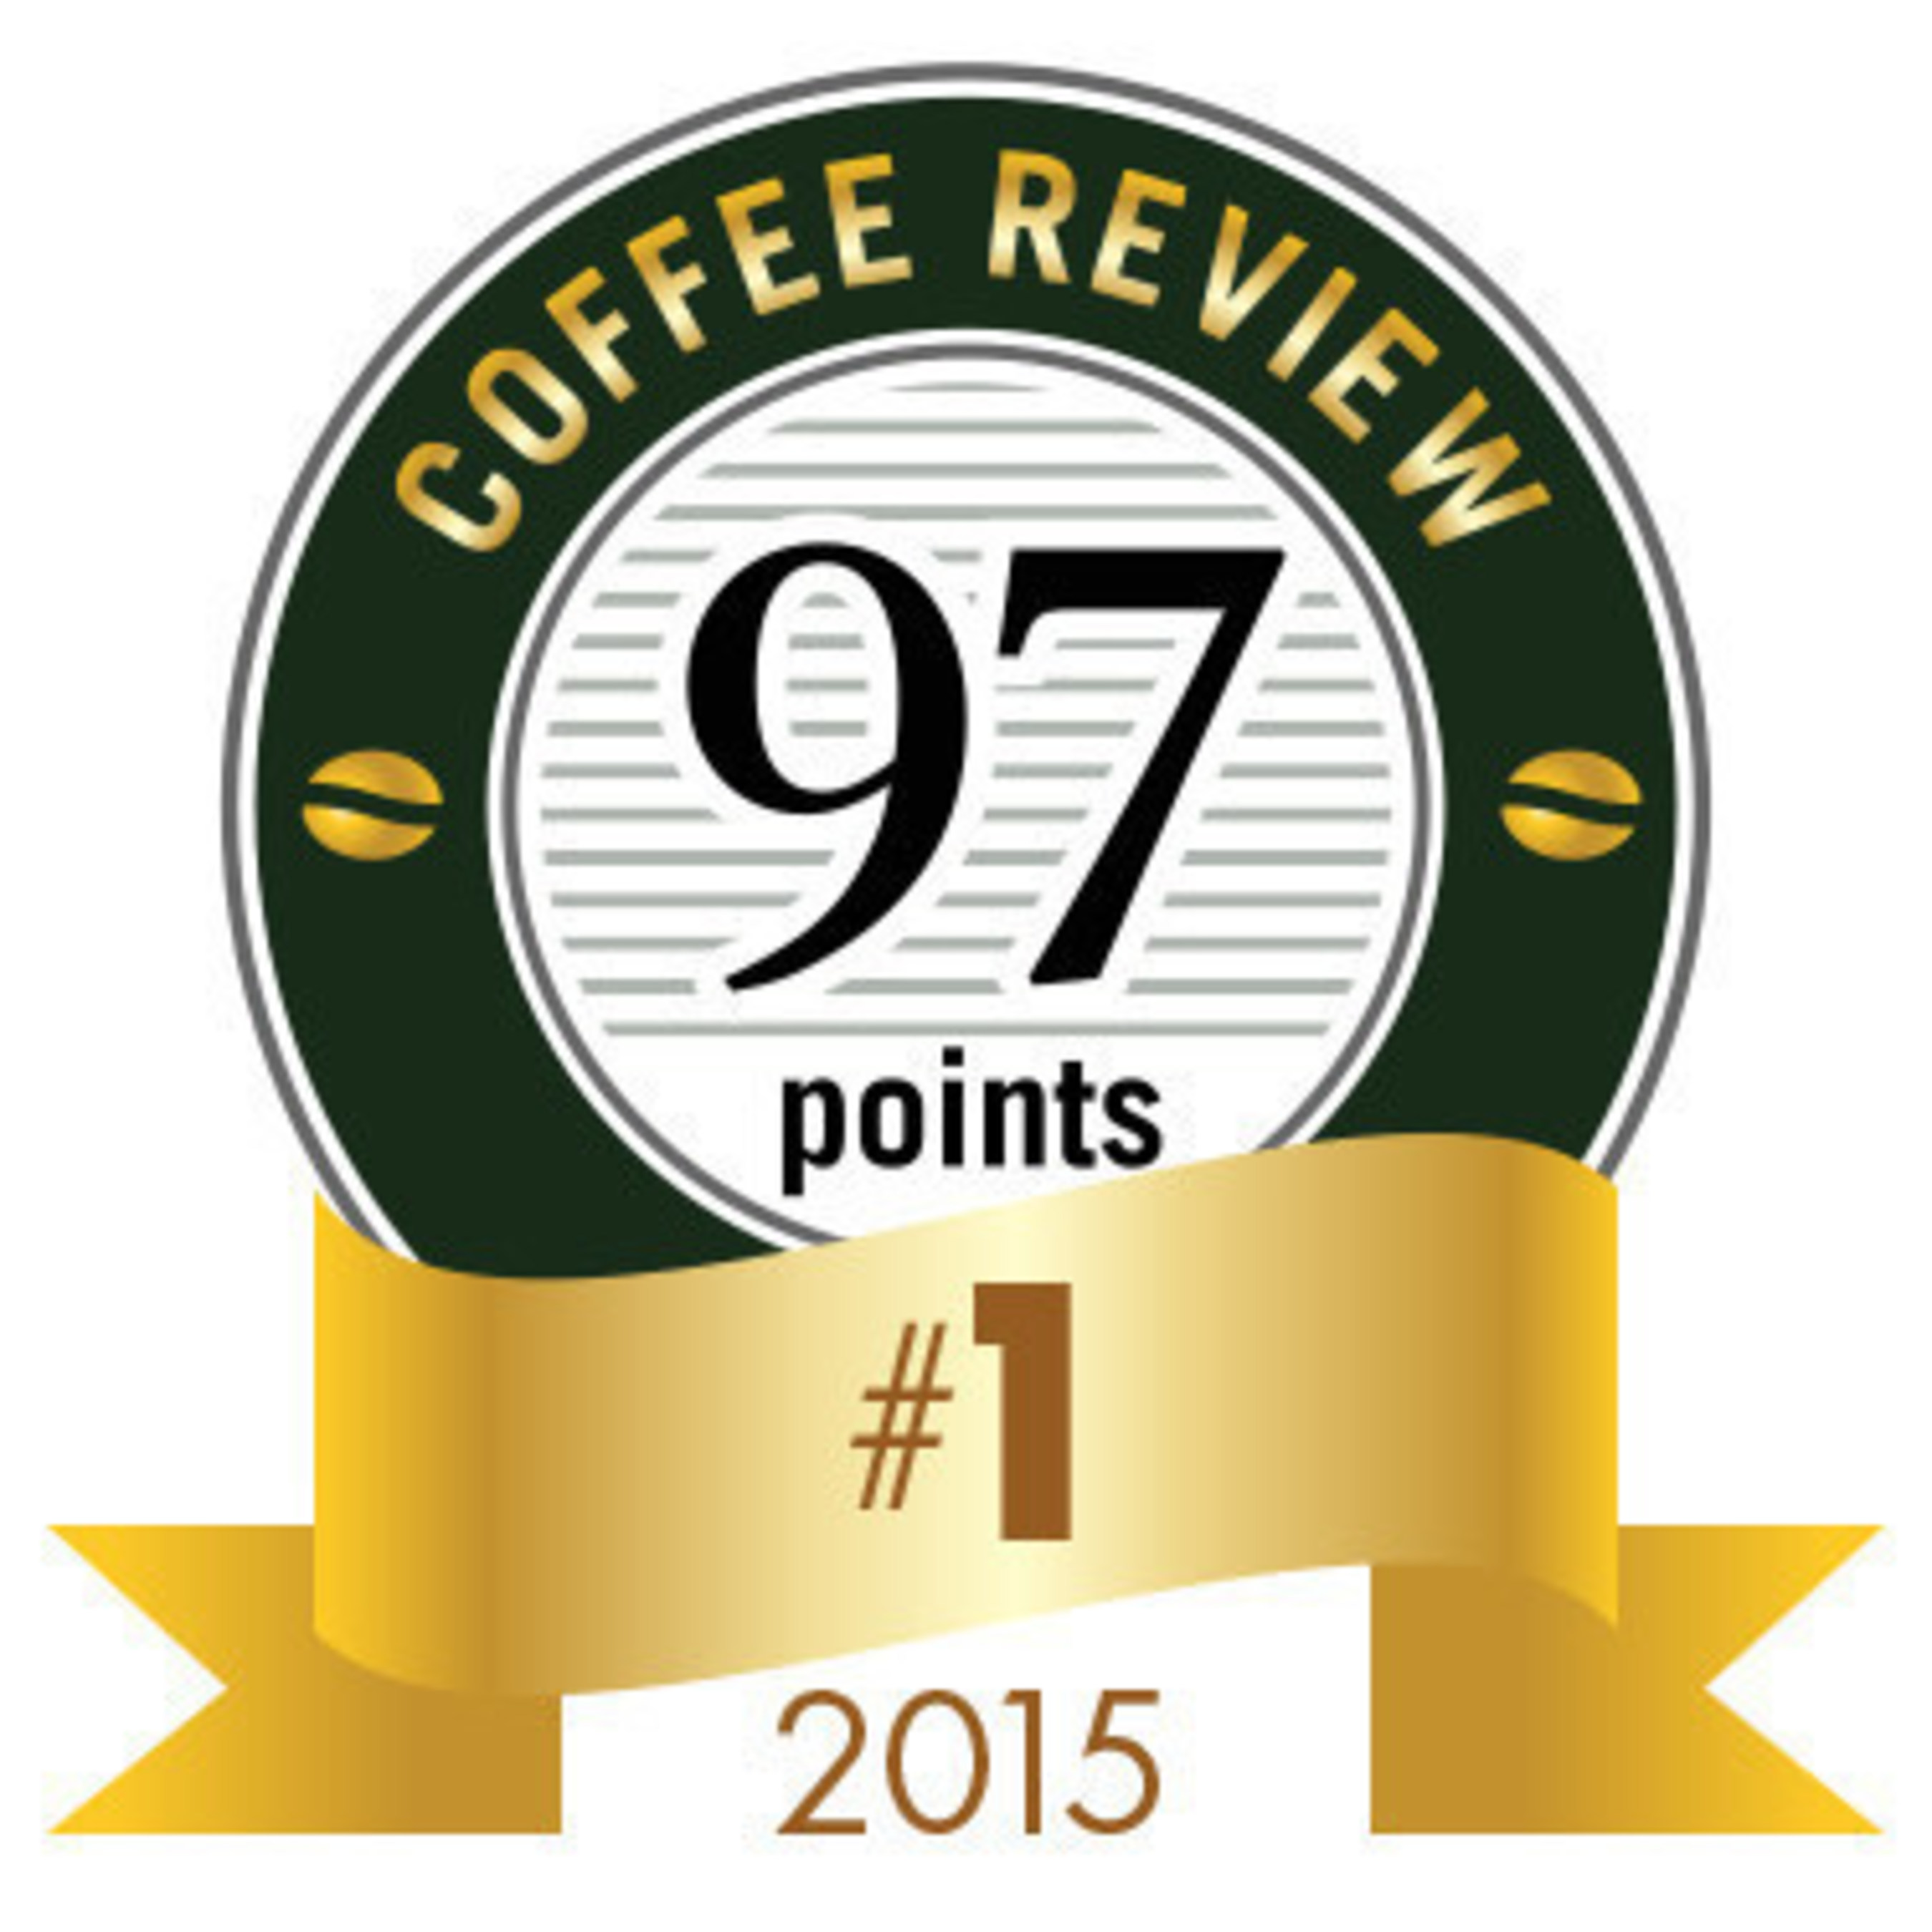 Coffee Review Announces Top Coffees of 2015